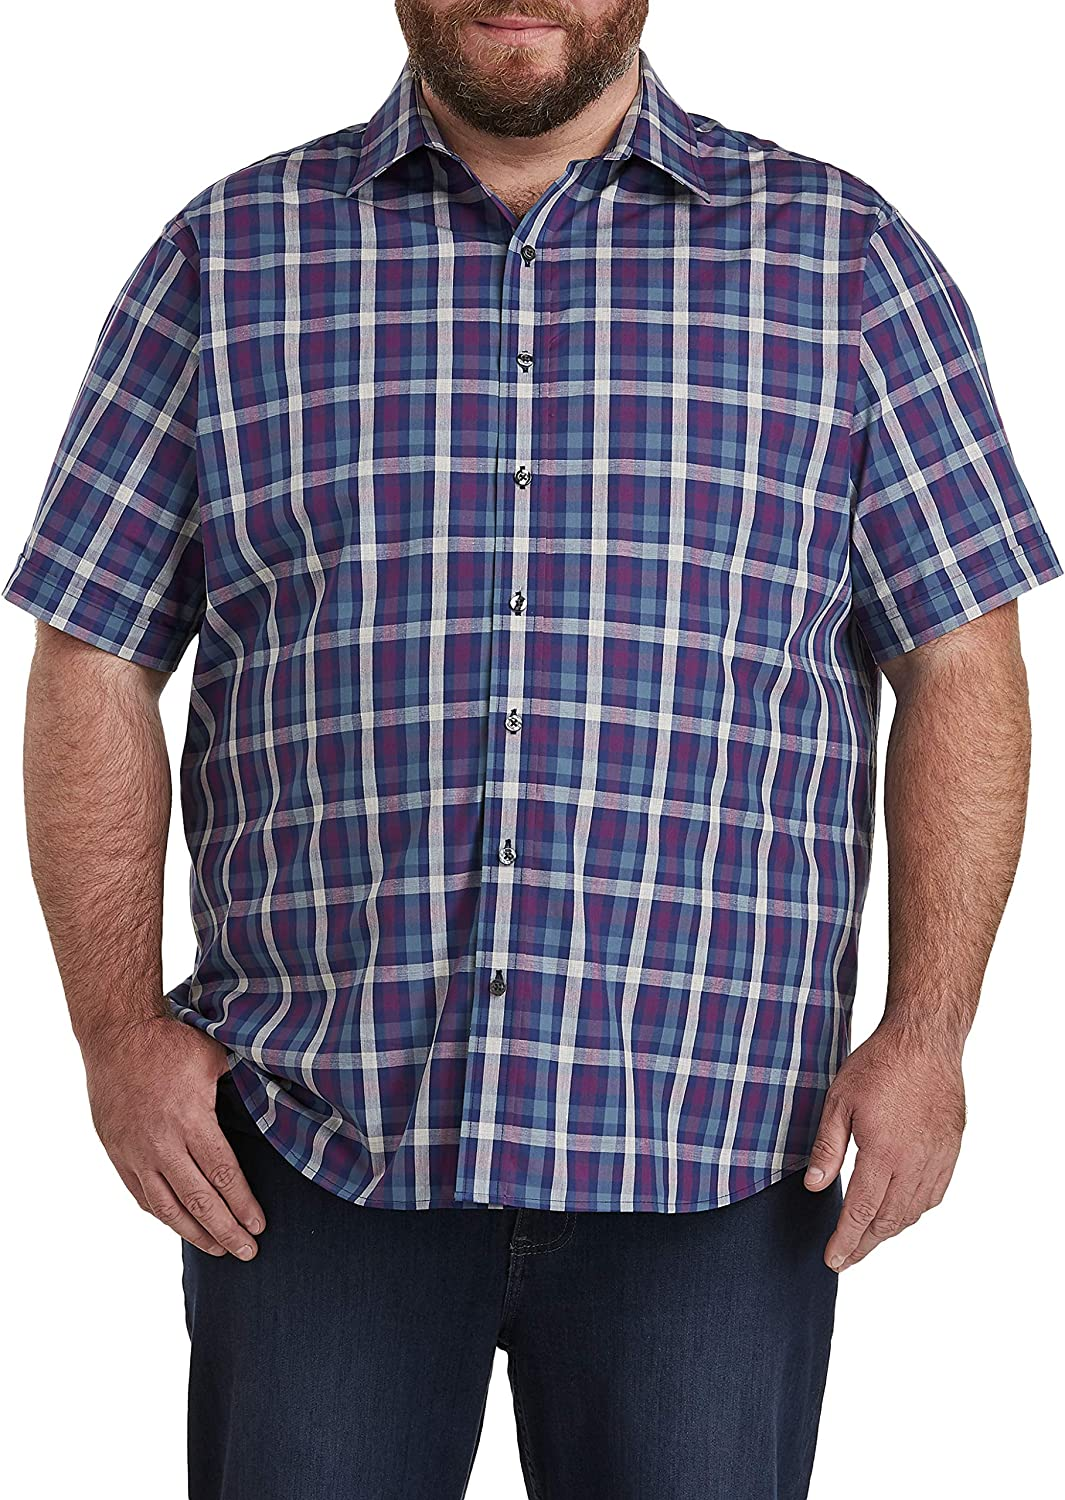 DXL Synrgy Big and Tall Check Sport Shirt, Twilight Blue